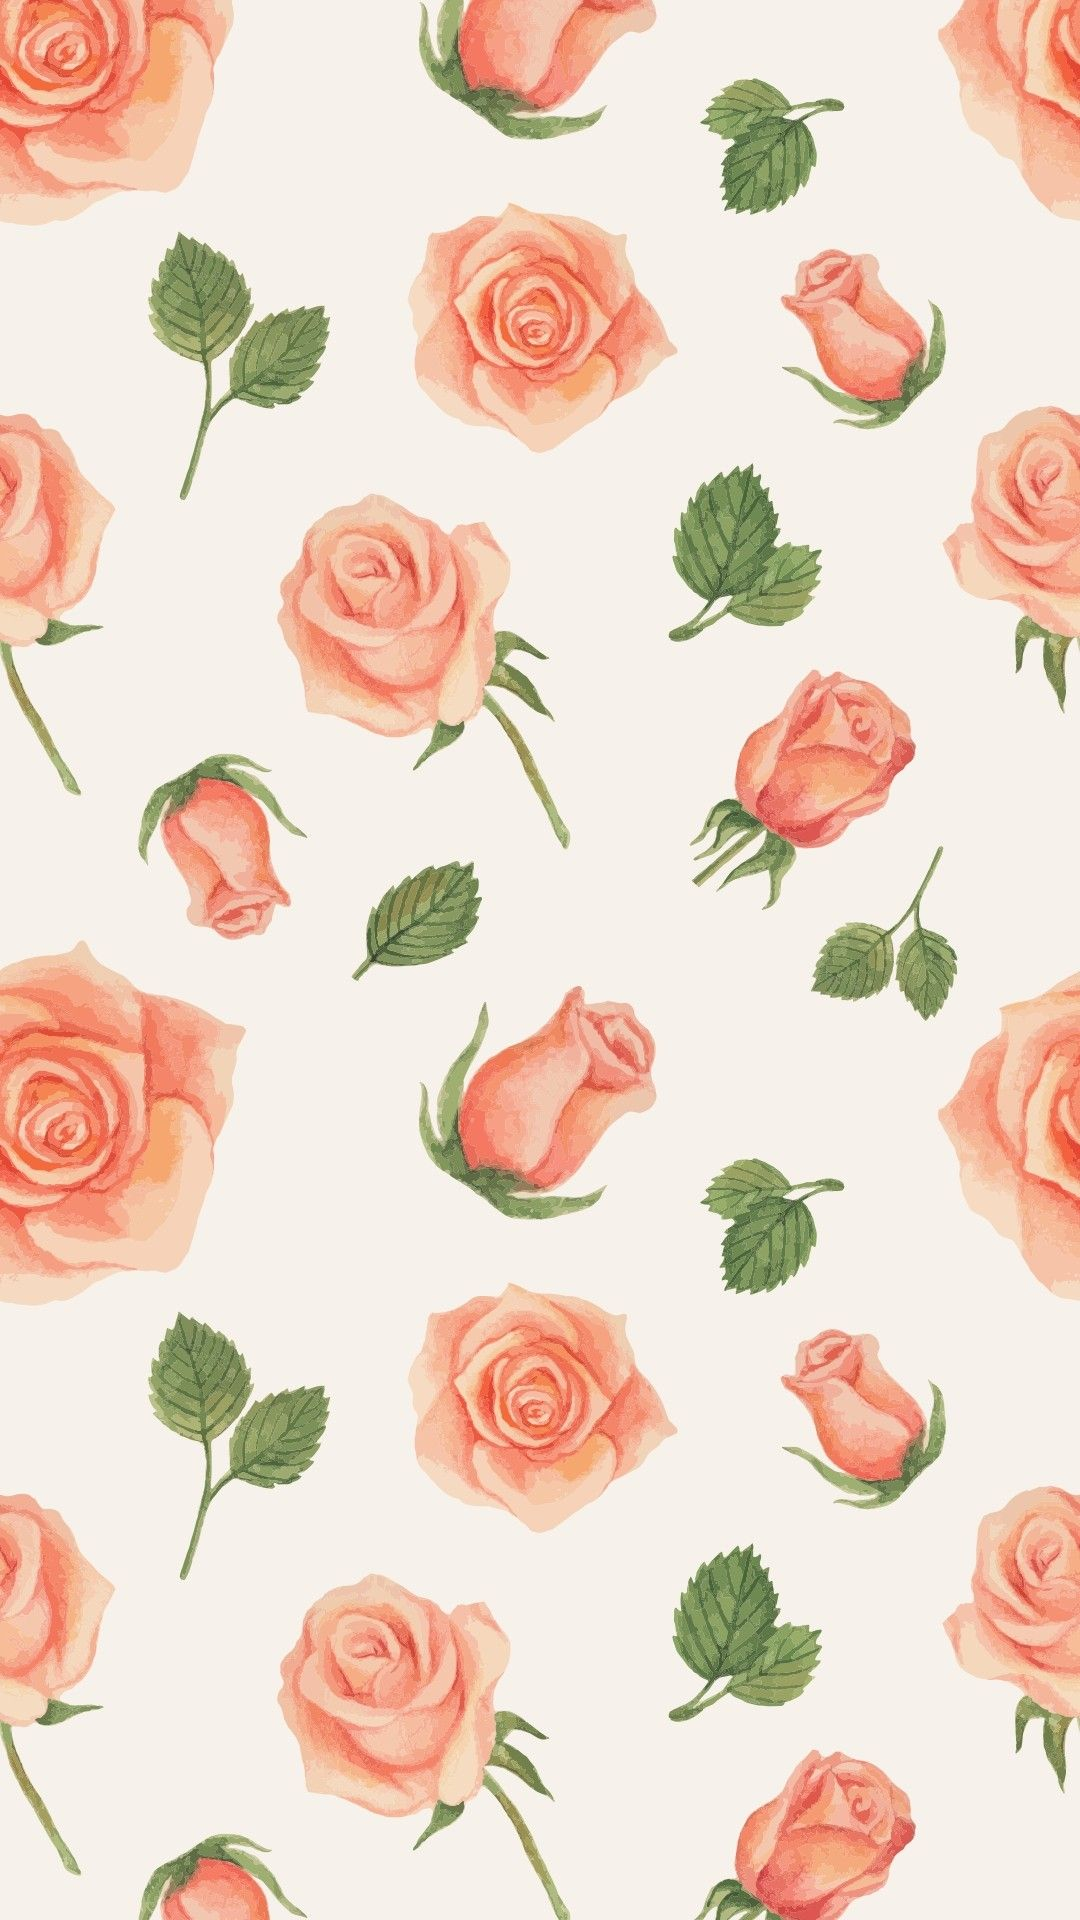 Pin by Grace Chen on 輕彩畫 Flower wallpaper, Fruit